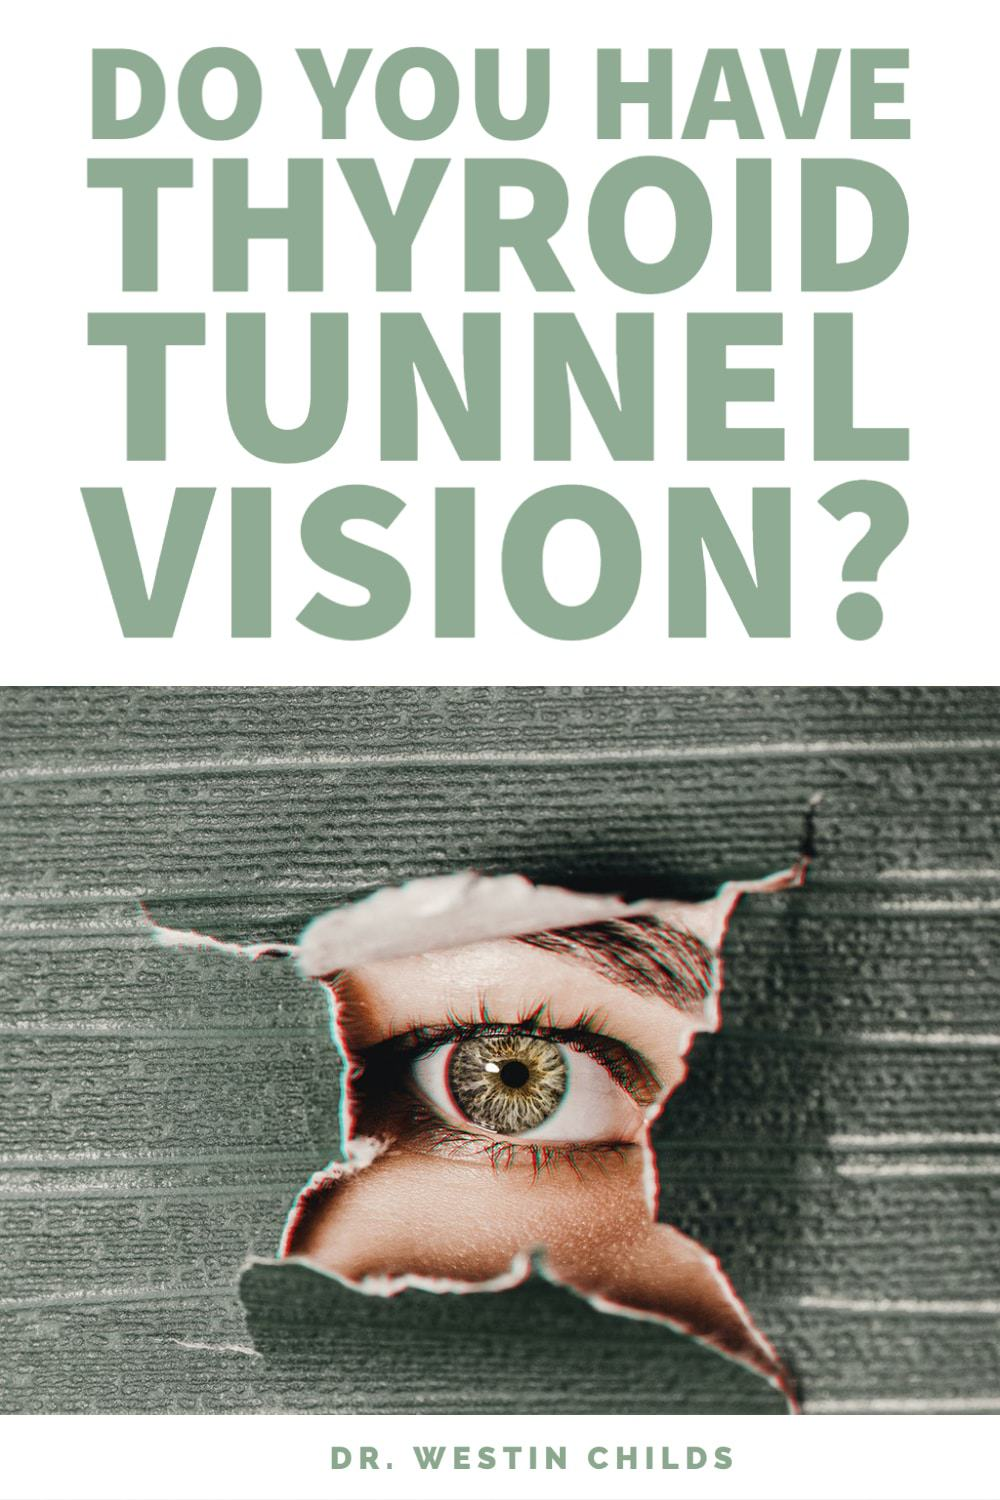 signs you have thyroid tunnel vision